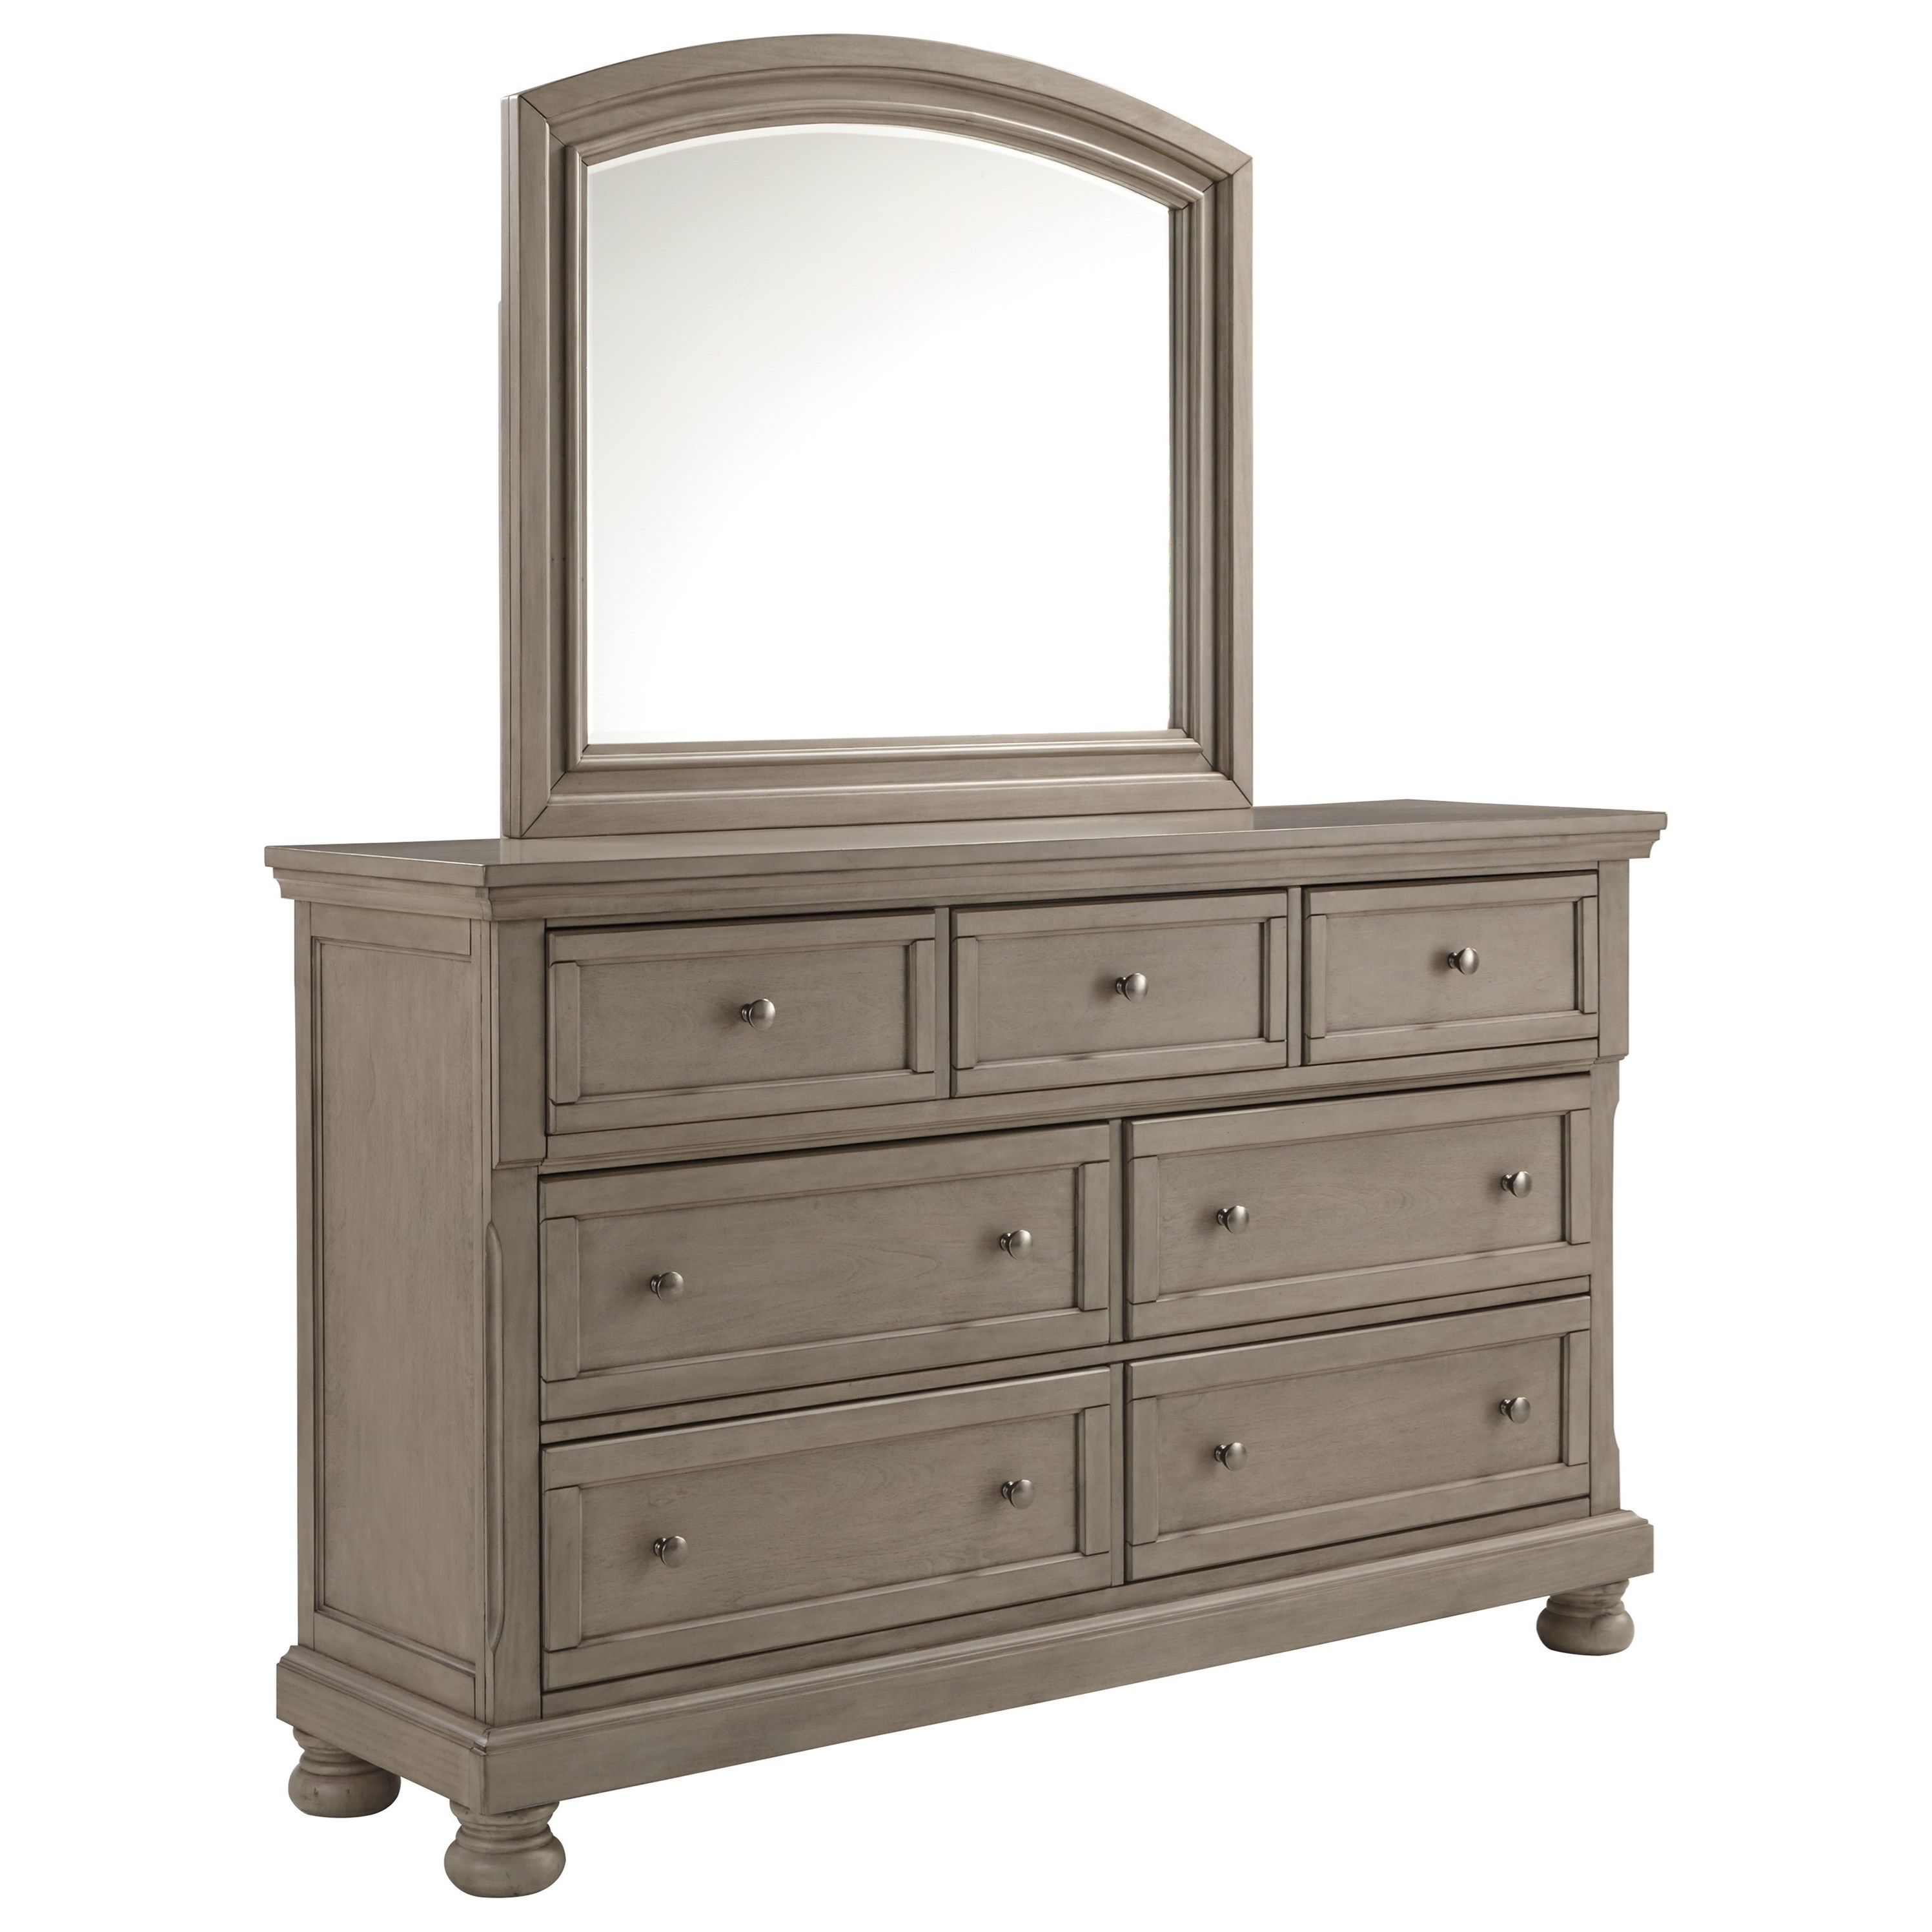 Lettner 7-Drawer Dresser and Mirror Set by Signature Design by Ashley at Northeast Factory Direct